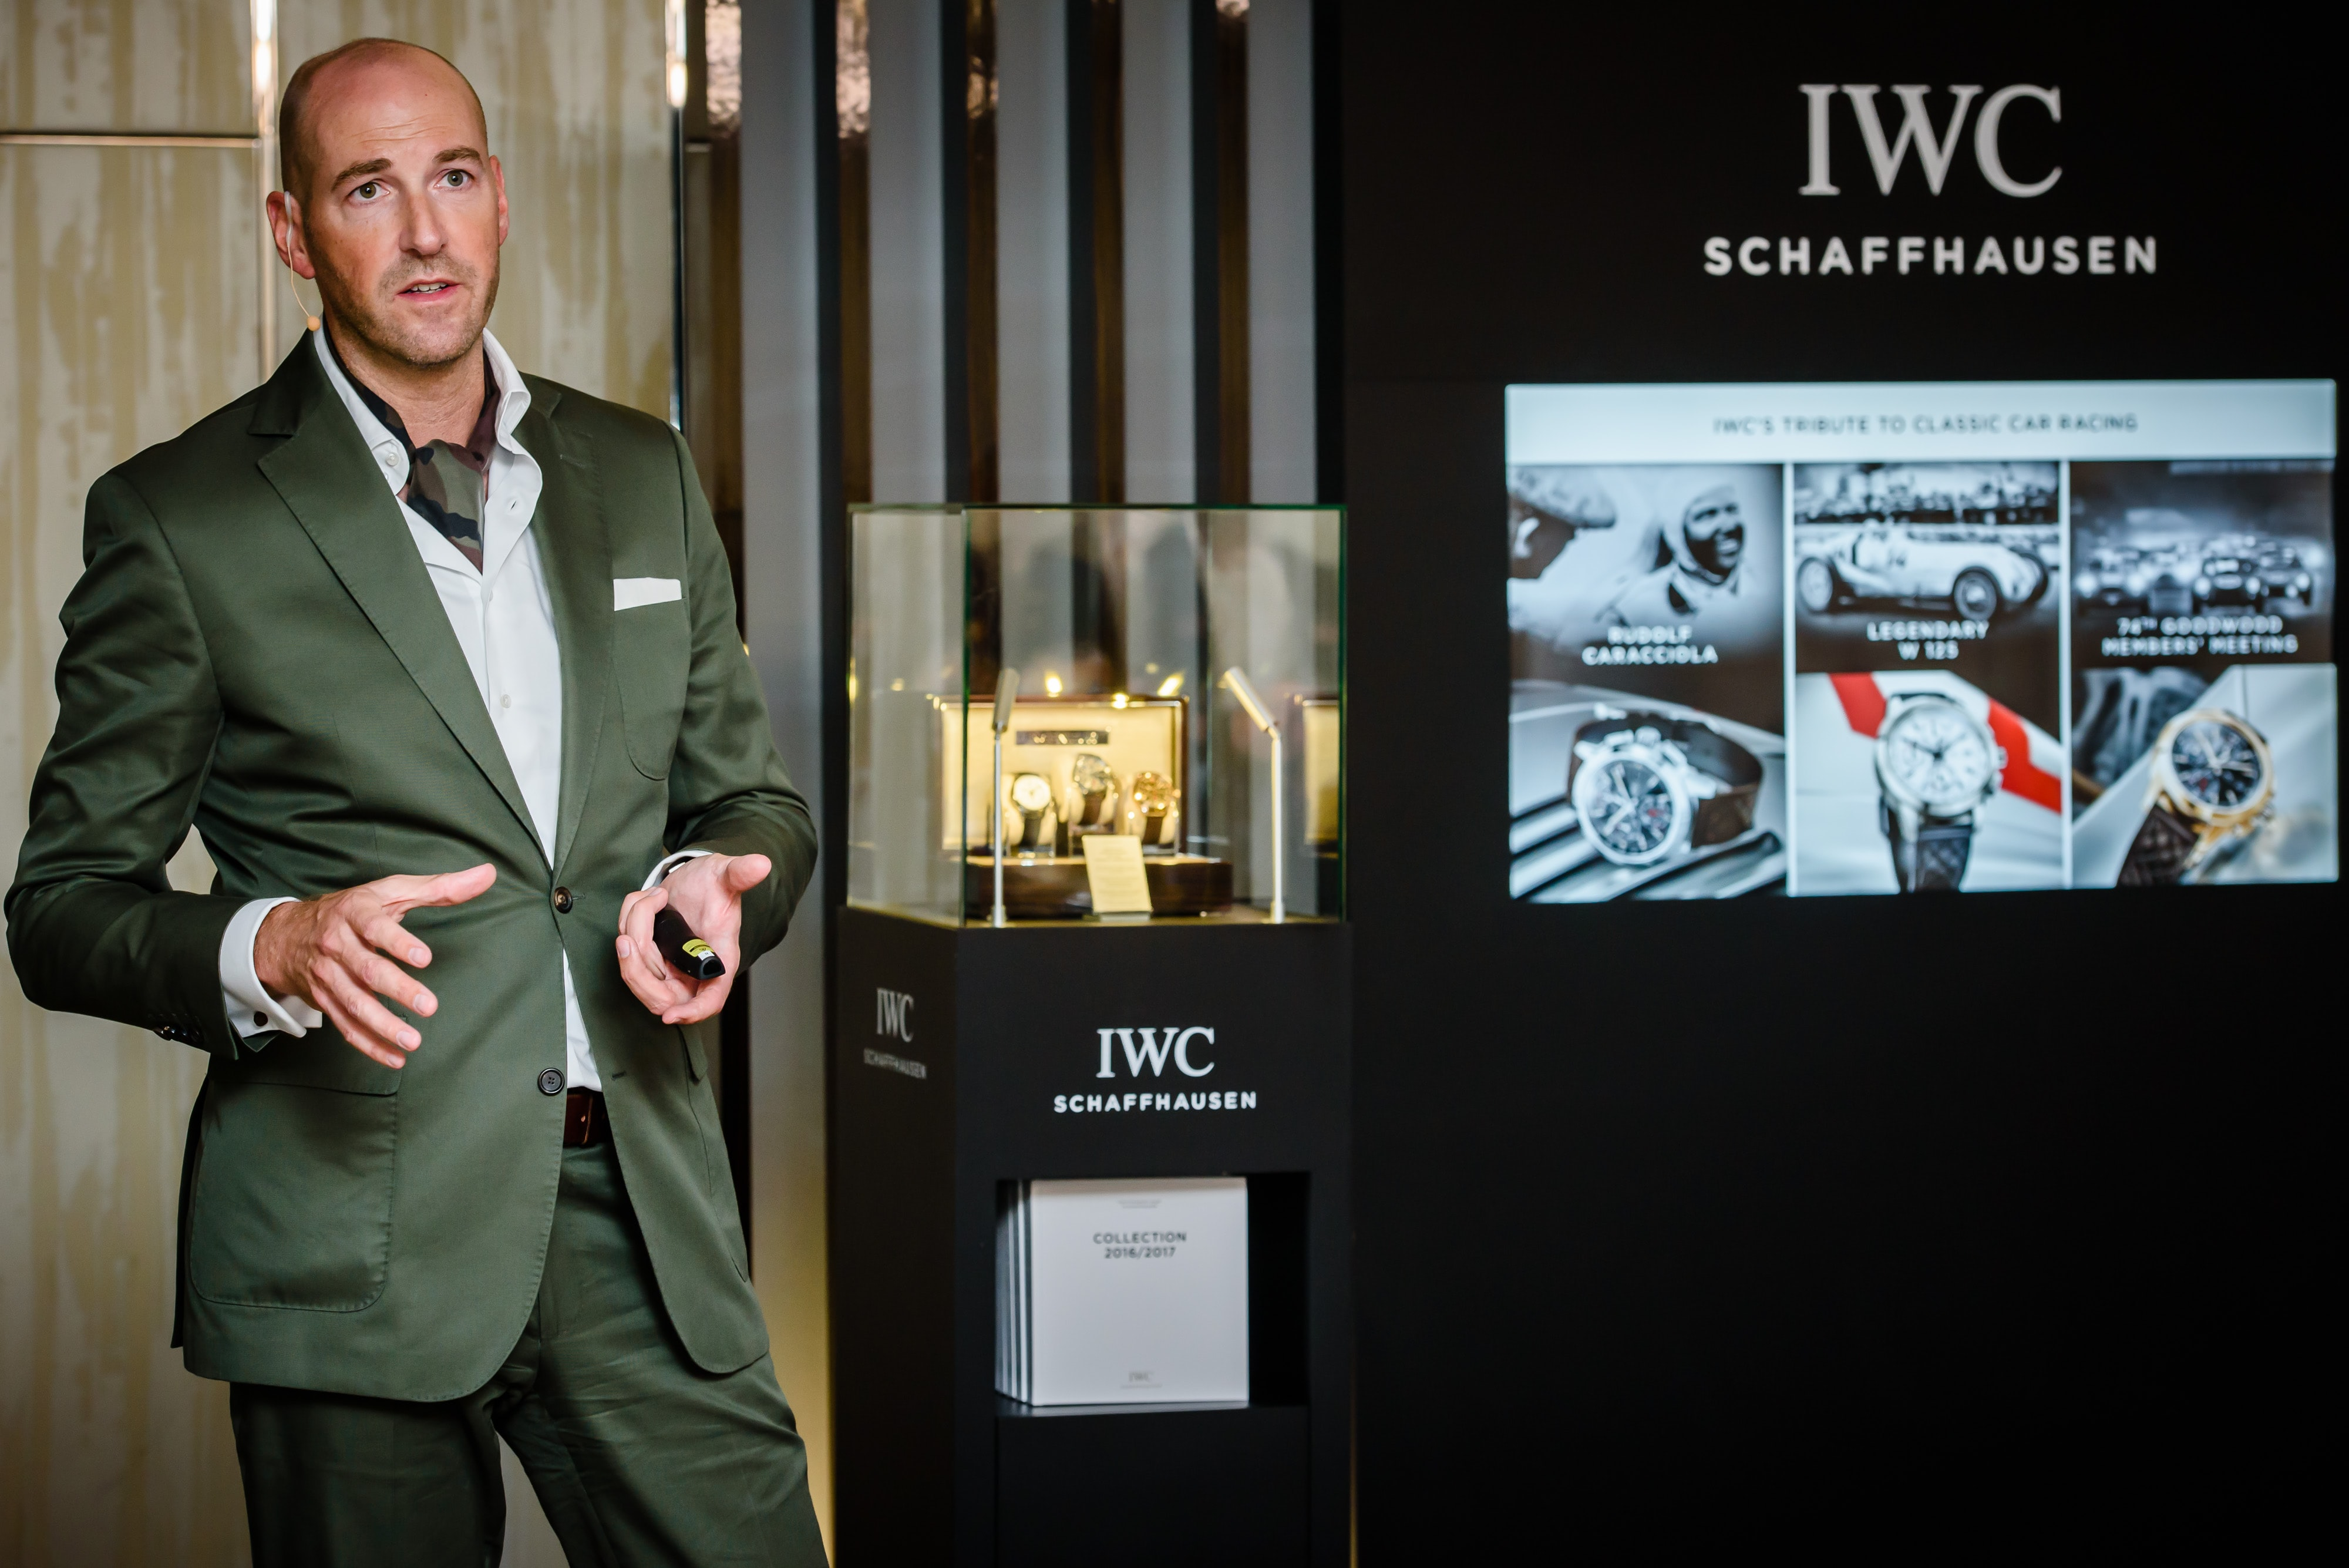 "Christian Knoop presenting the new chronograph movement at The Dolder Grand, in Zurich.  Introducing: IWC's New In-House Chronograph Caliber 69370 Makes An Understated But Impressive Debut In The Ingenieur Chronograph Edition ""Rudolf Caracciola Introducing: IWC's New In-House Chronograph Caliber 69370 Makes An Understated But Impressive Debut In The Ingenieur Chronograph Edition ""Rudolf Caracciola"" 150616BILAN004"